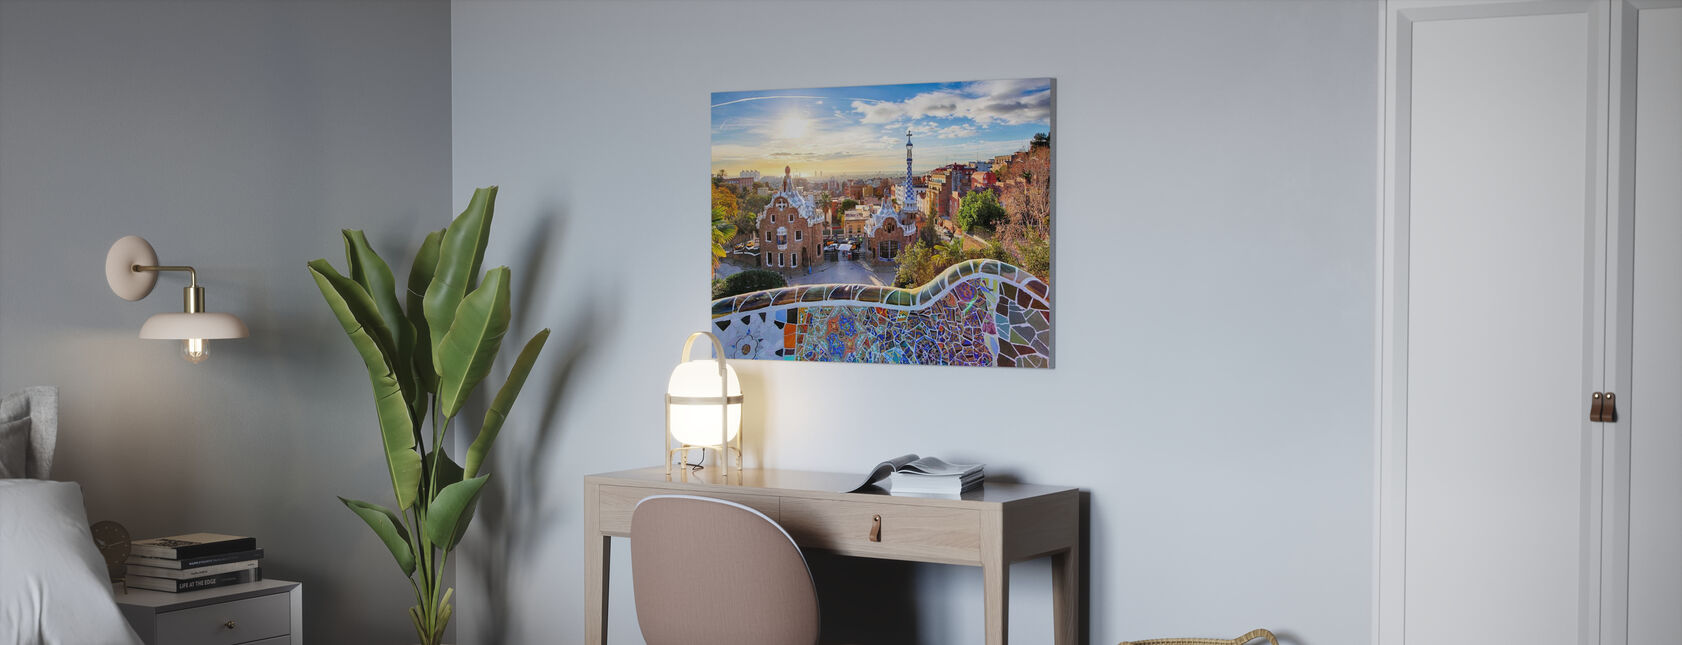 Park Guell - Canvas print - Office